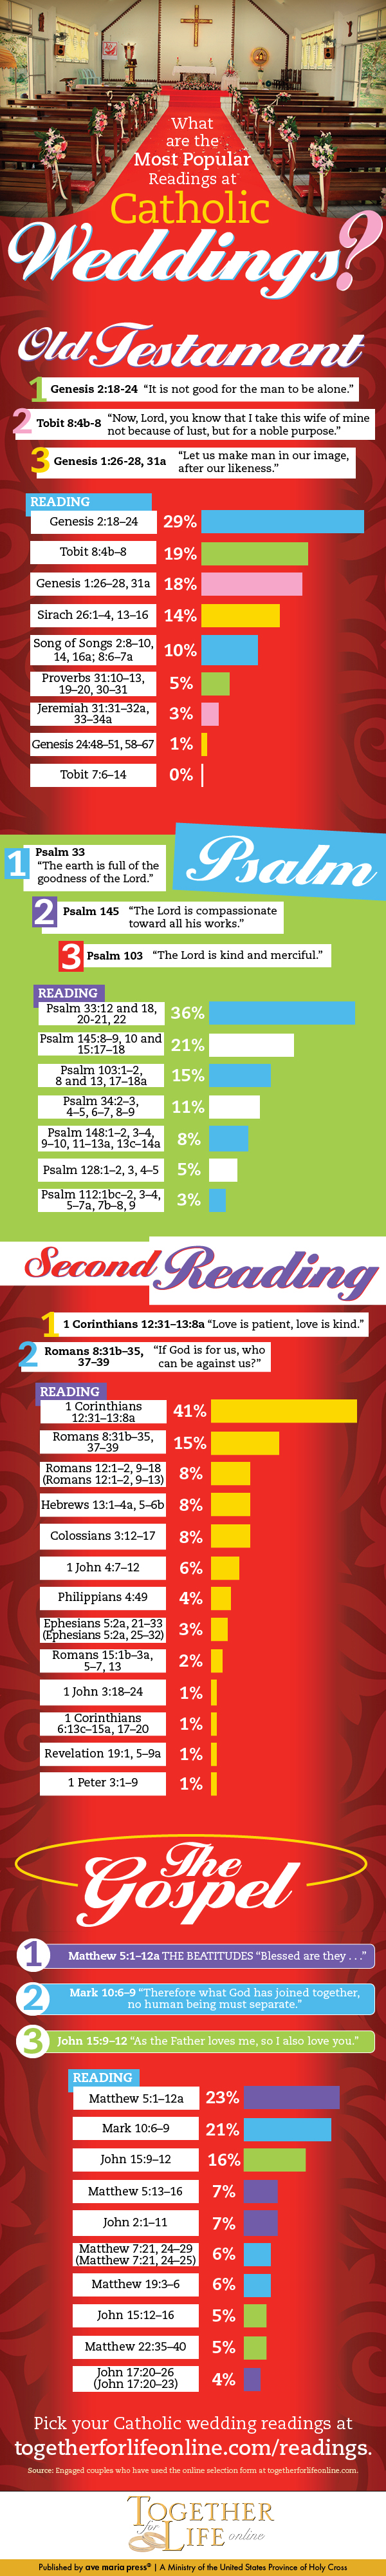 The Most Por Catholic Wedding Readings Infographic Via Together For Life Online